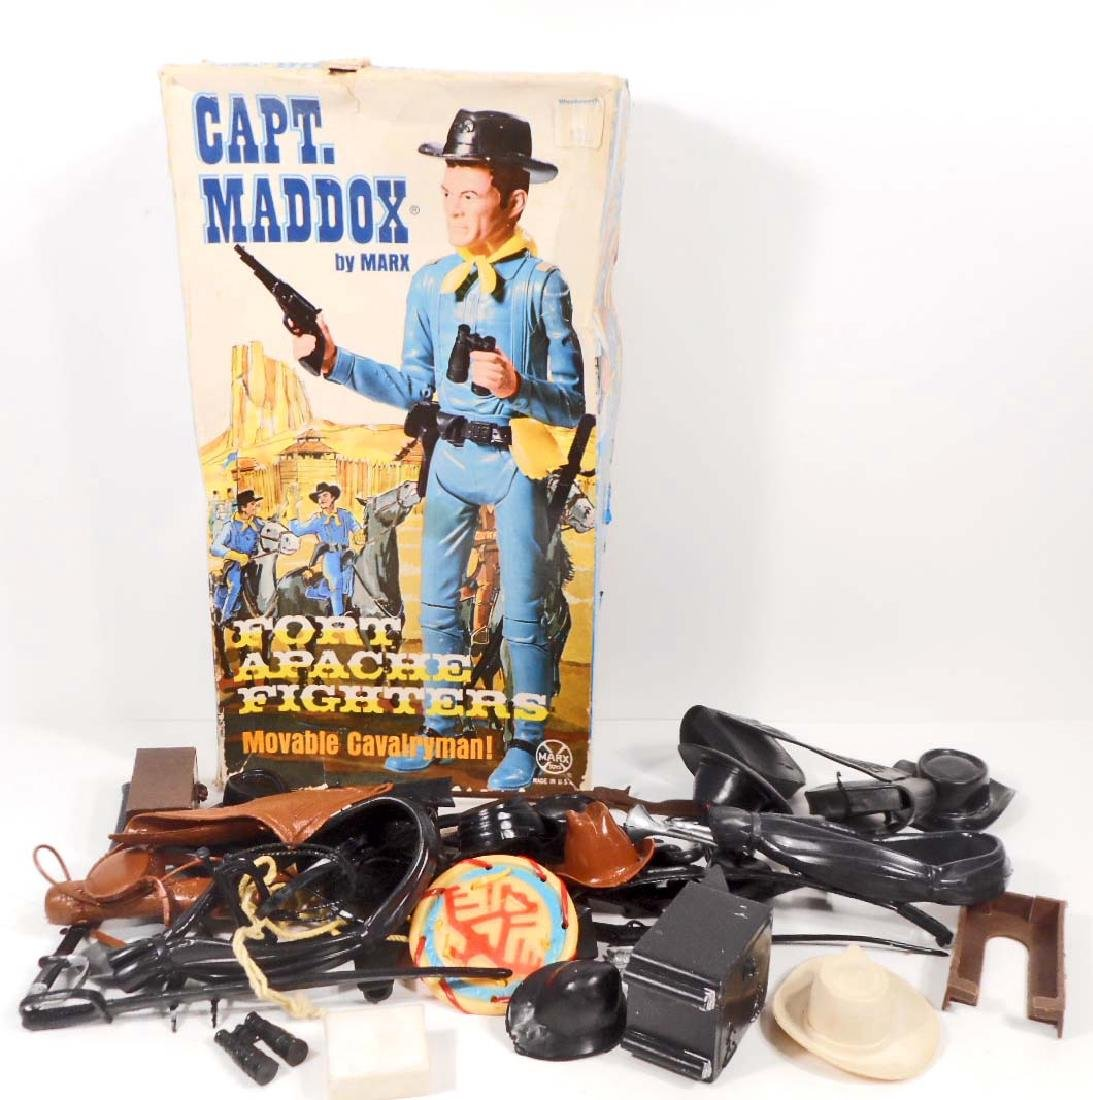 VINTAGE JOHNNY WEST CAPT MADDOX BOX FULL OF ACCESSORIES